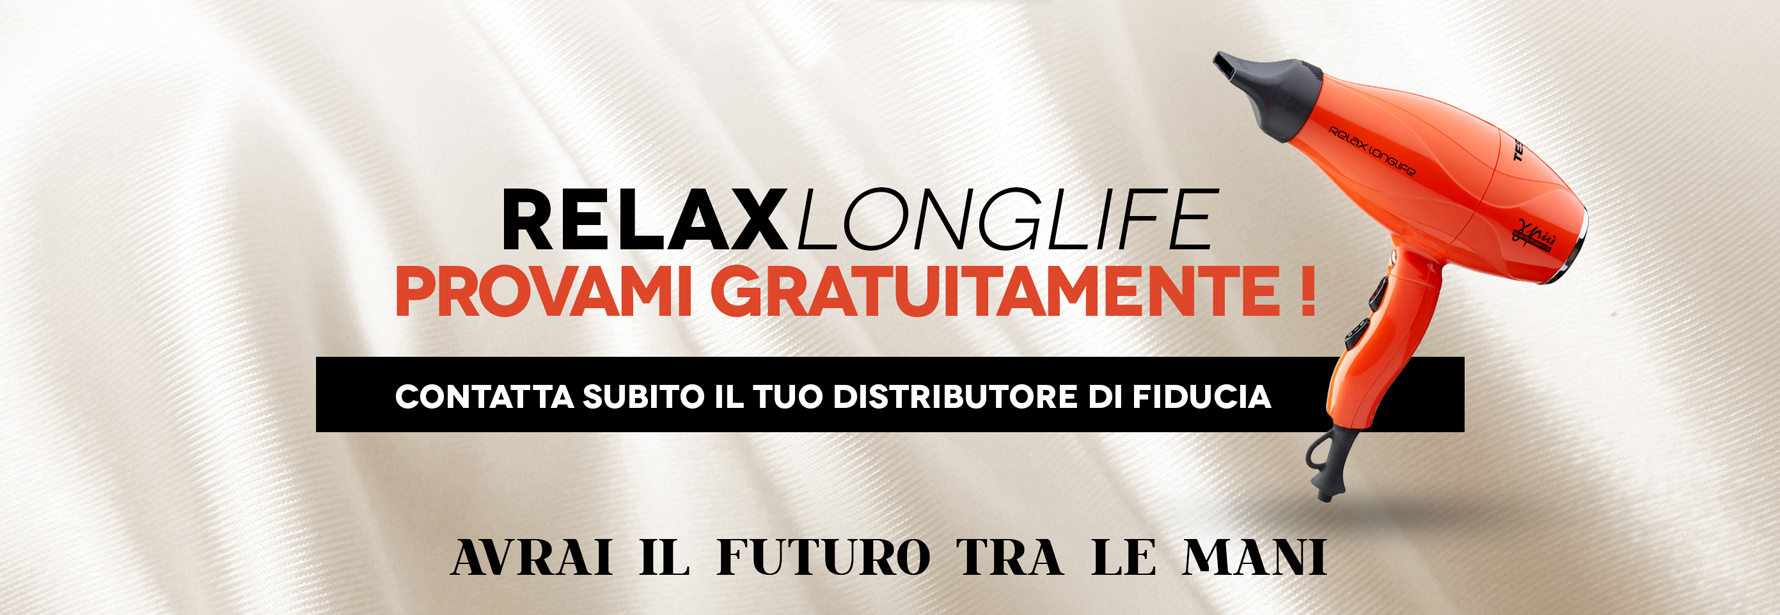 RELAX LONGLIFE